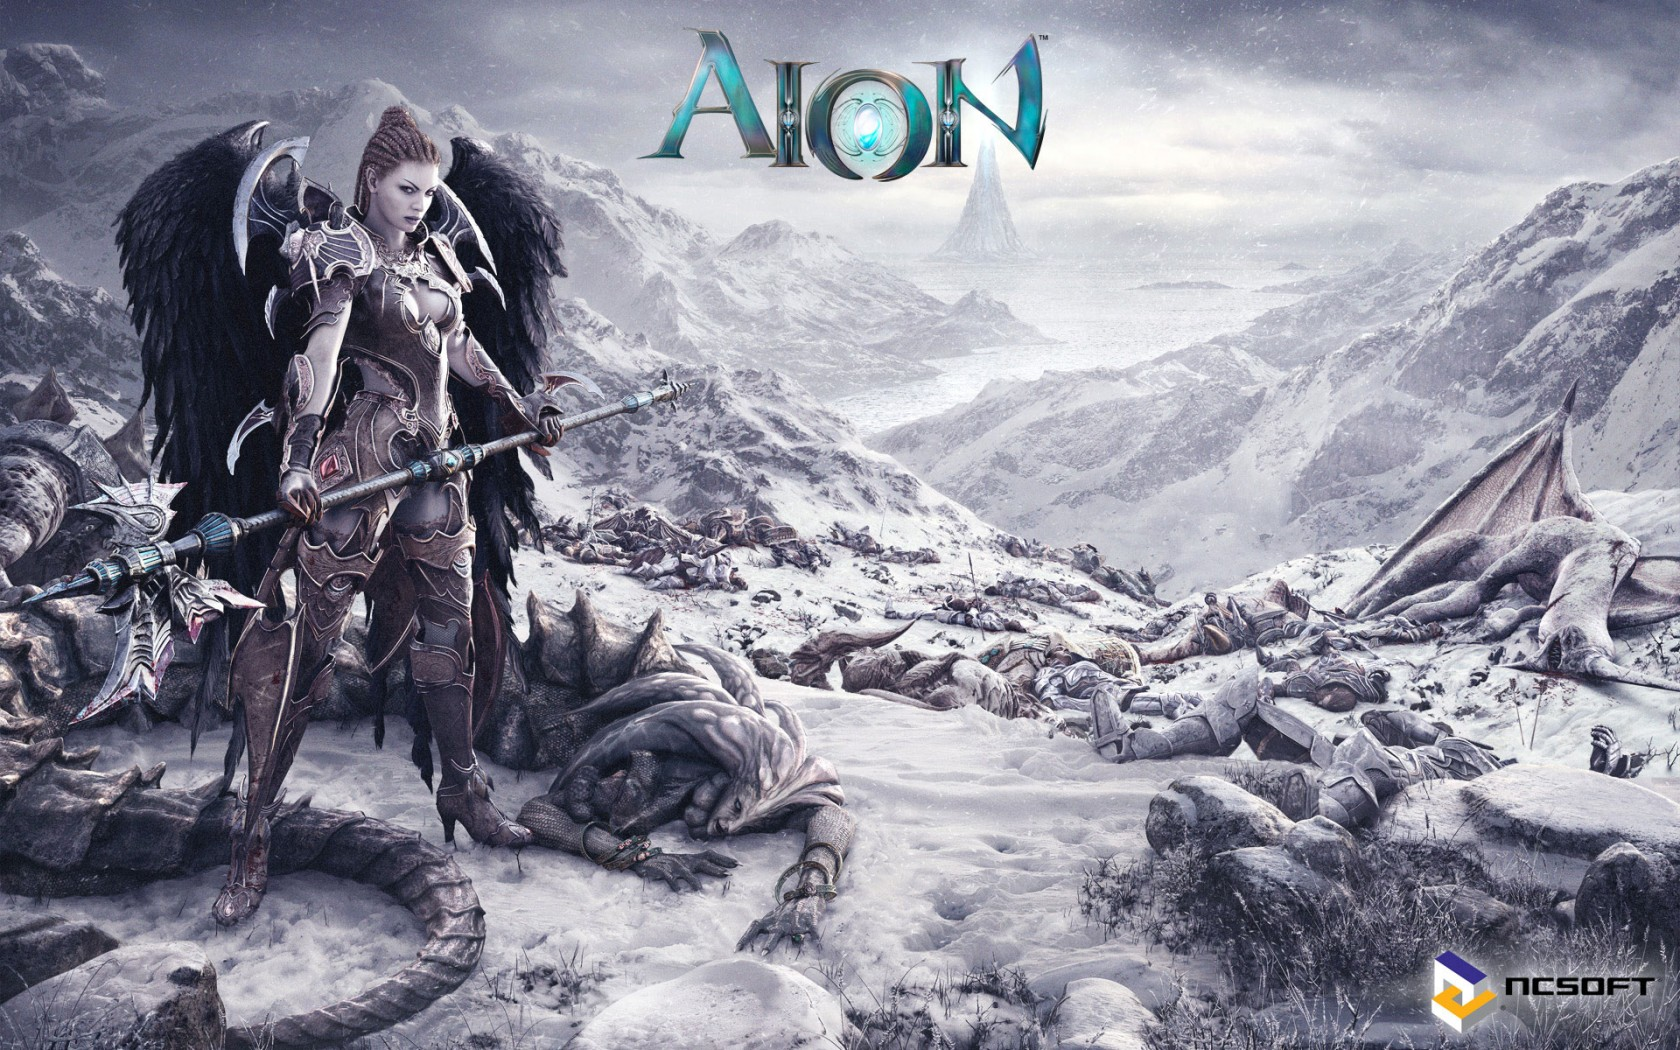 Metro 2033 Wallpaper Hd Aion Online Game Wallpapers Hd Wallpapers Id 7016